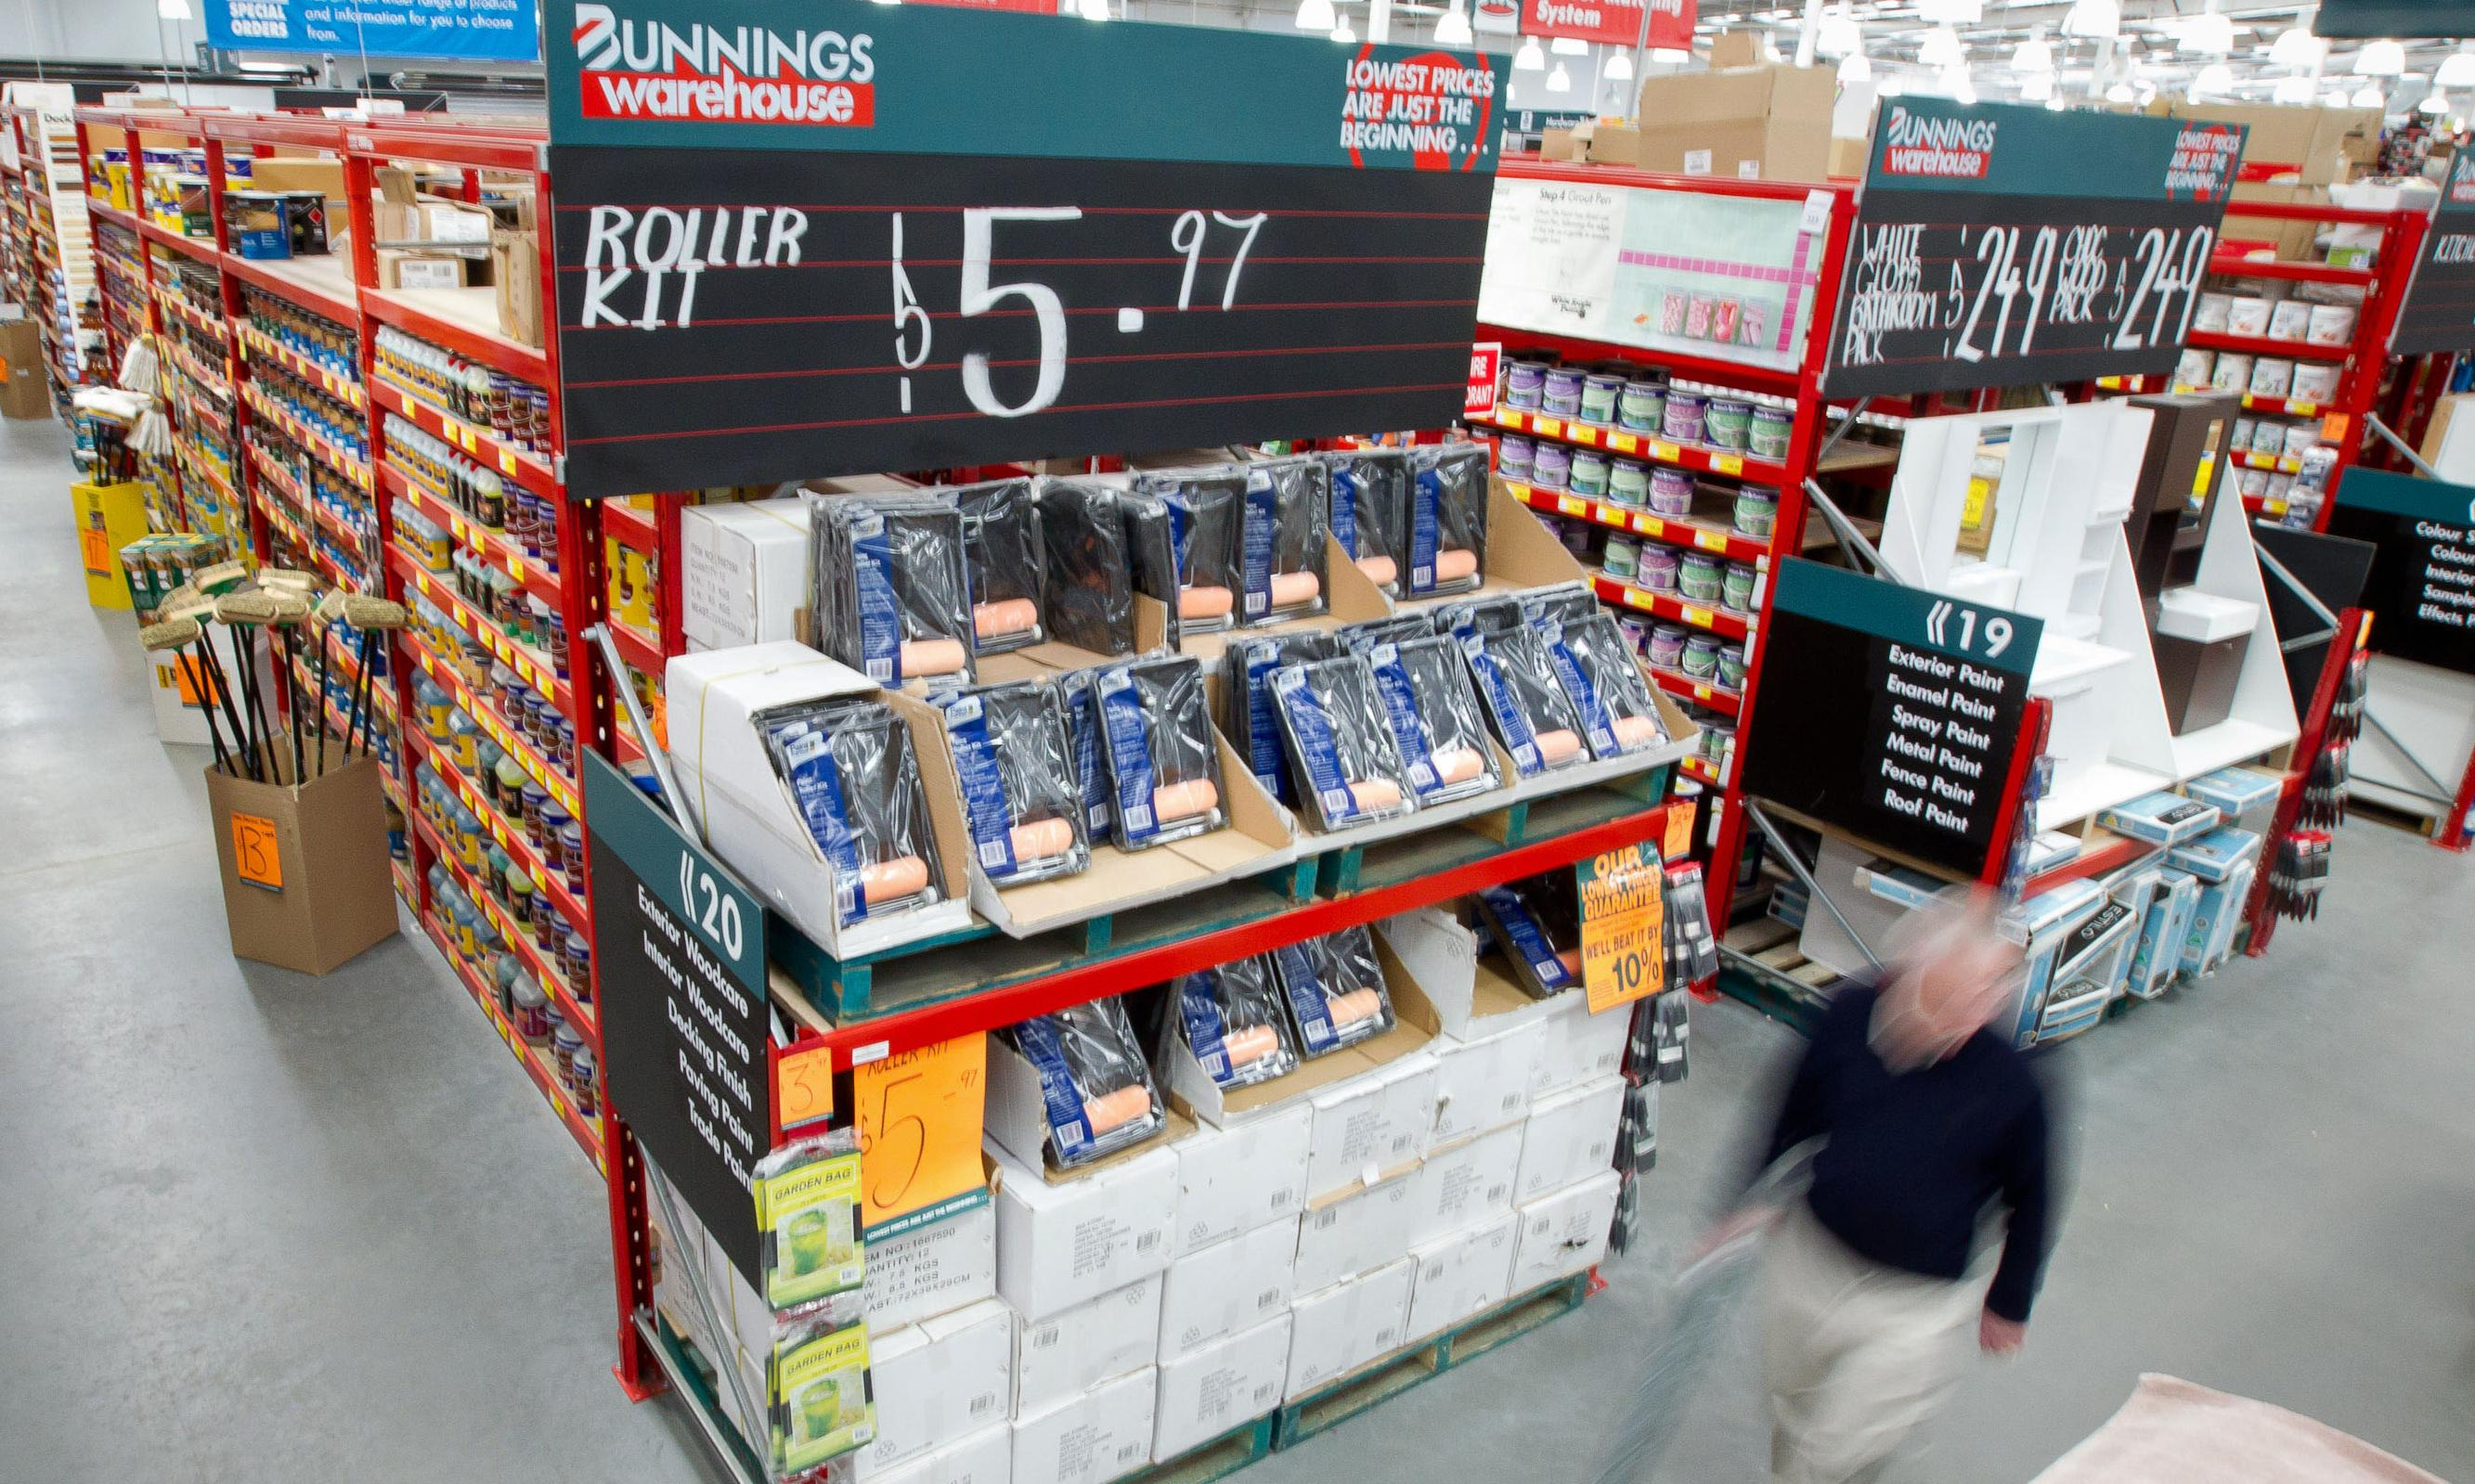 Albanese accuses Bunnings of wage theft after workers underpaid for 10 years